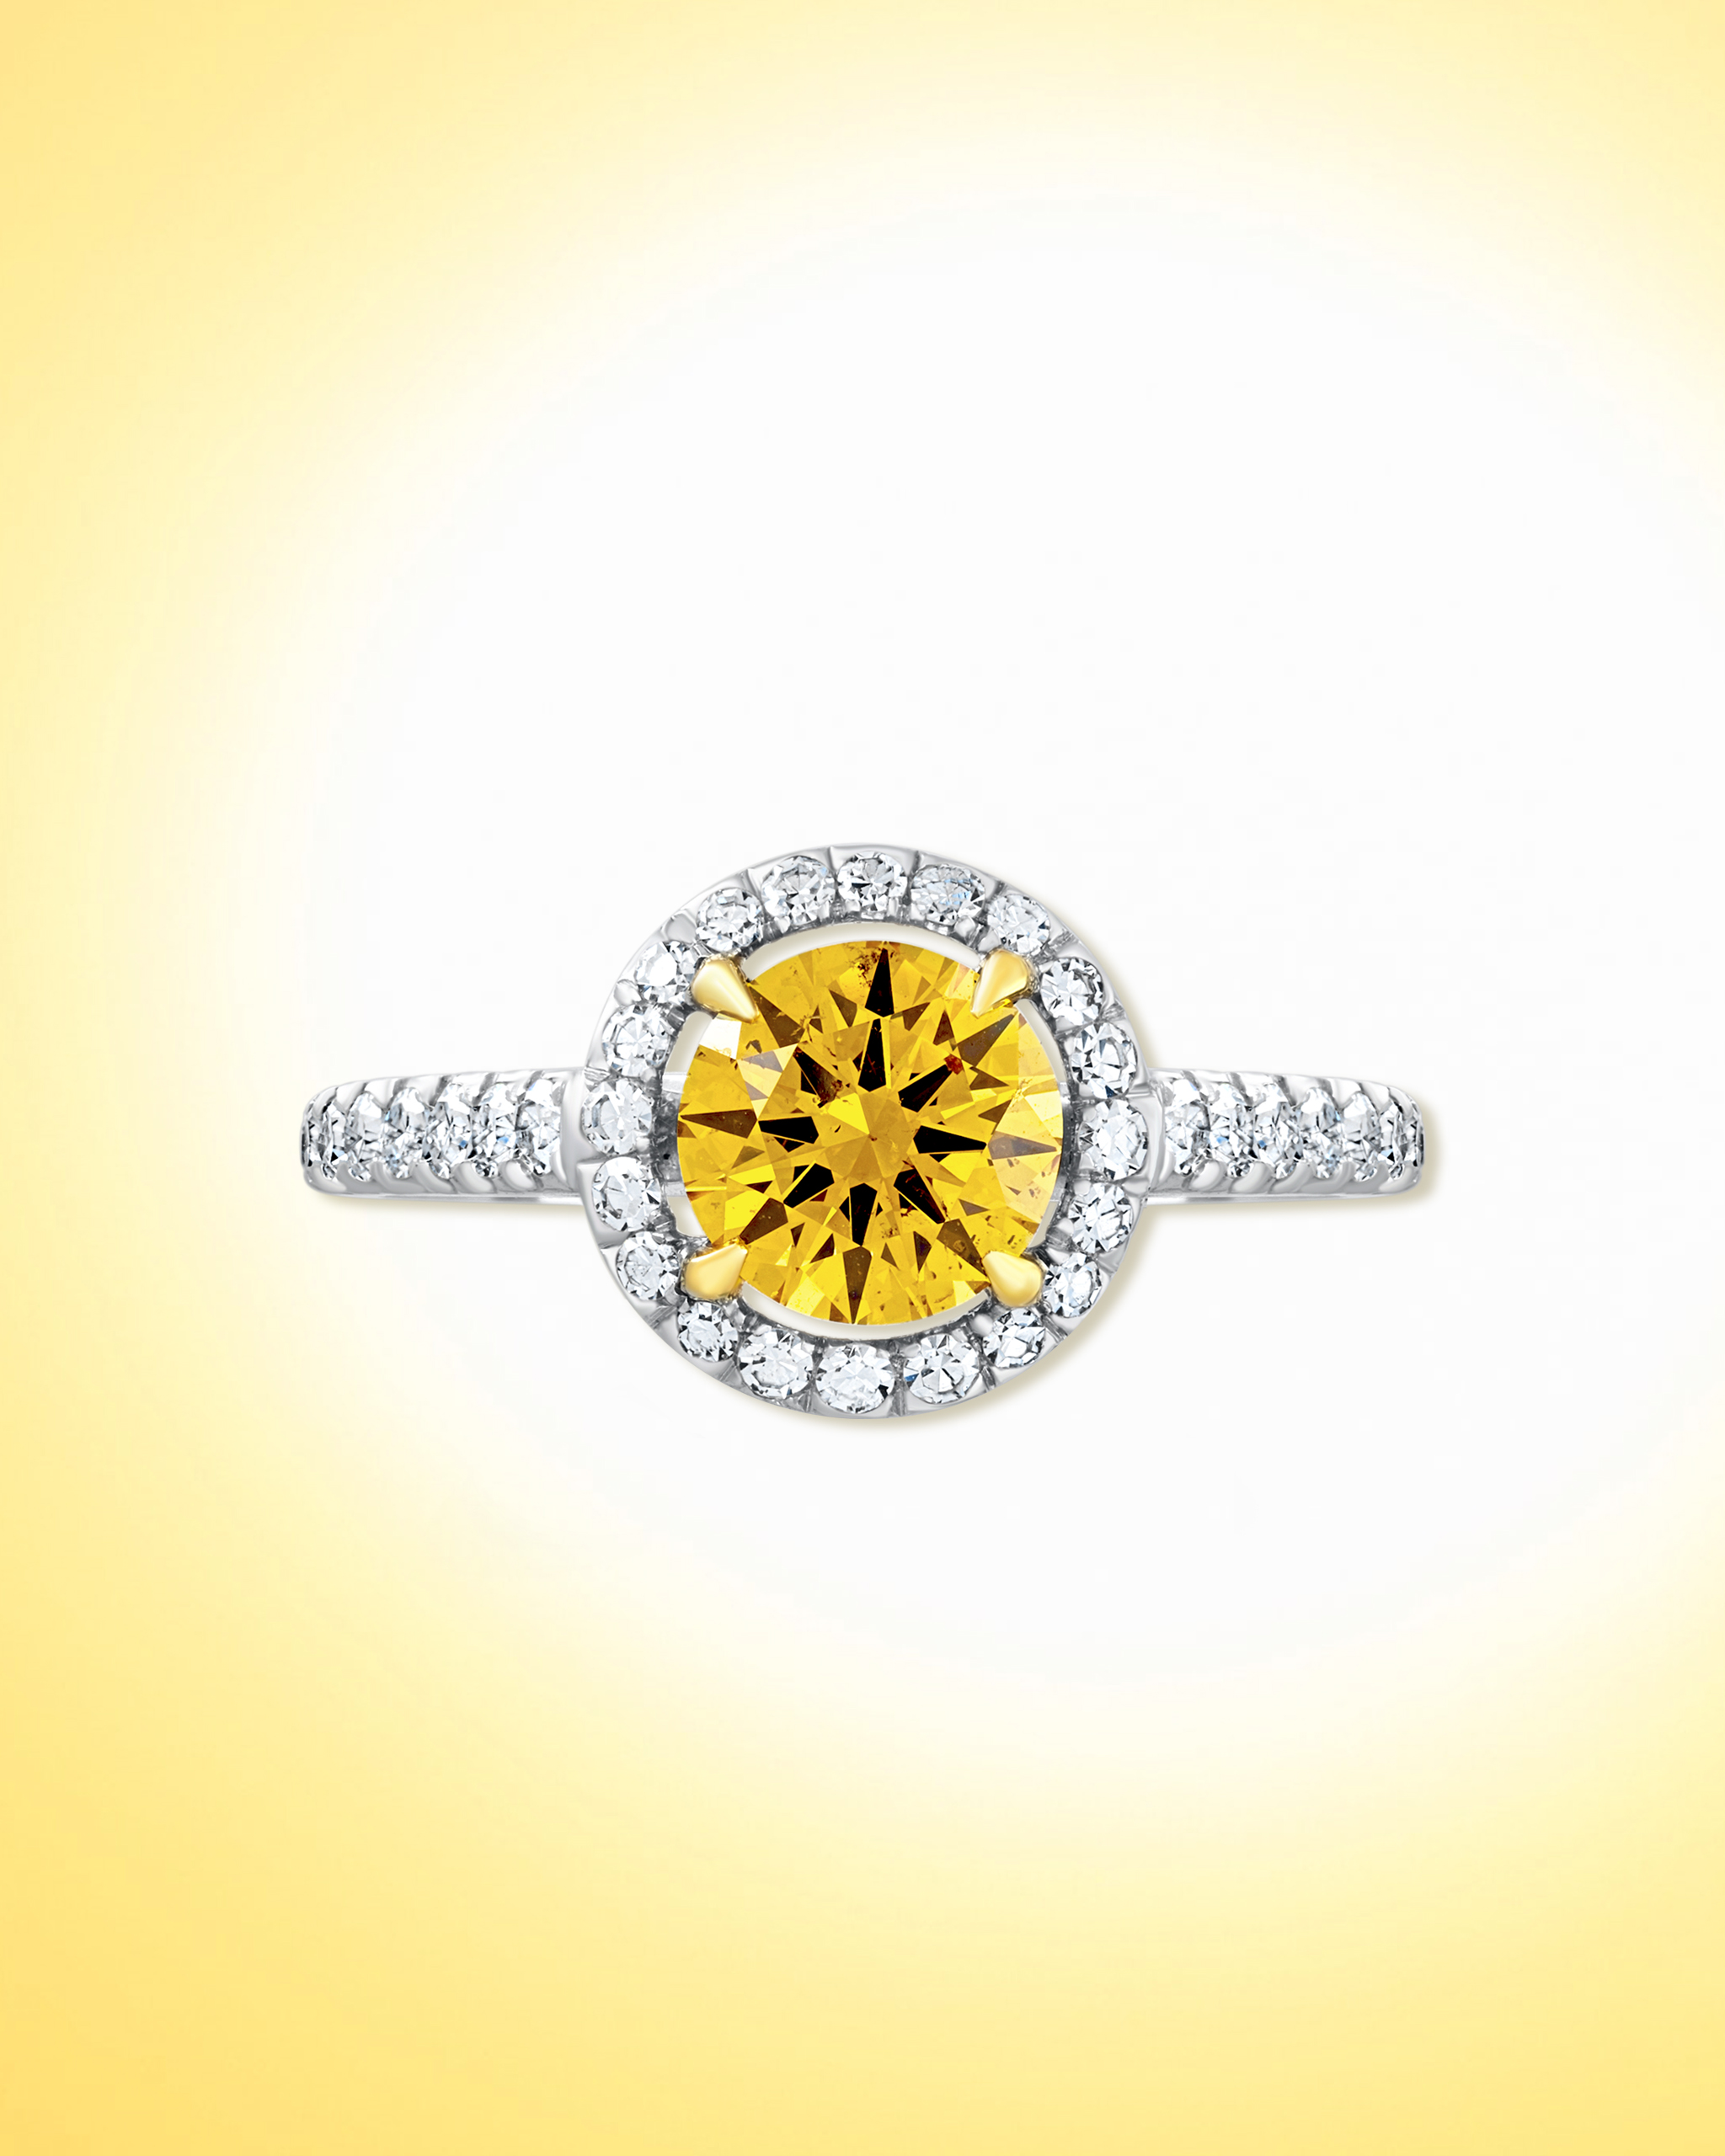 Round cut yellow diamond ring haloed by white pave diamonds on a platinum band from David Morris